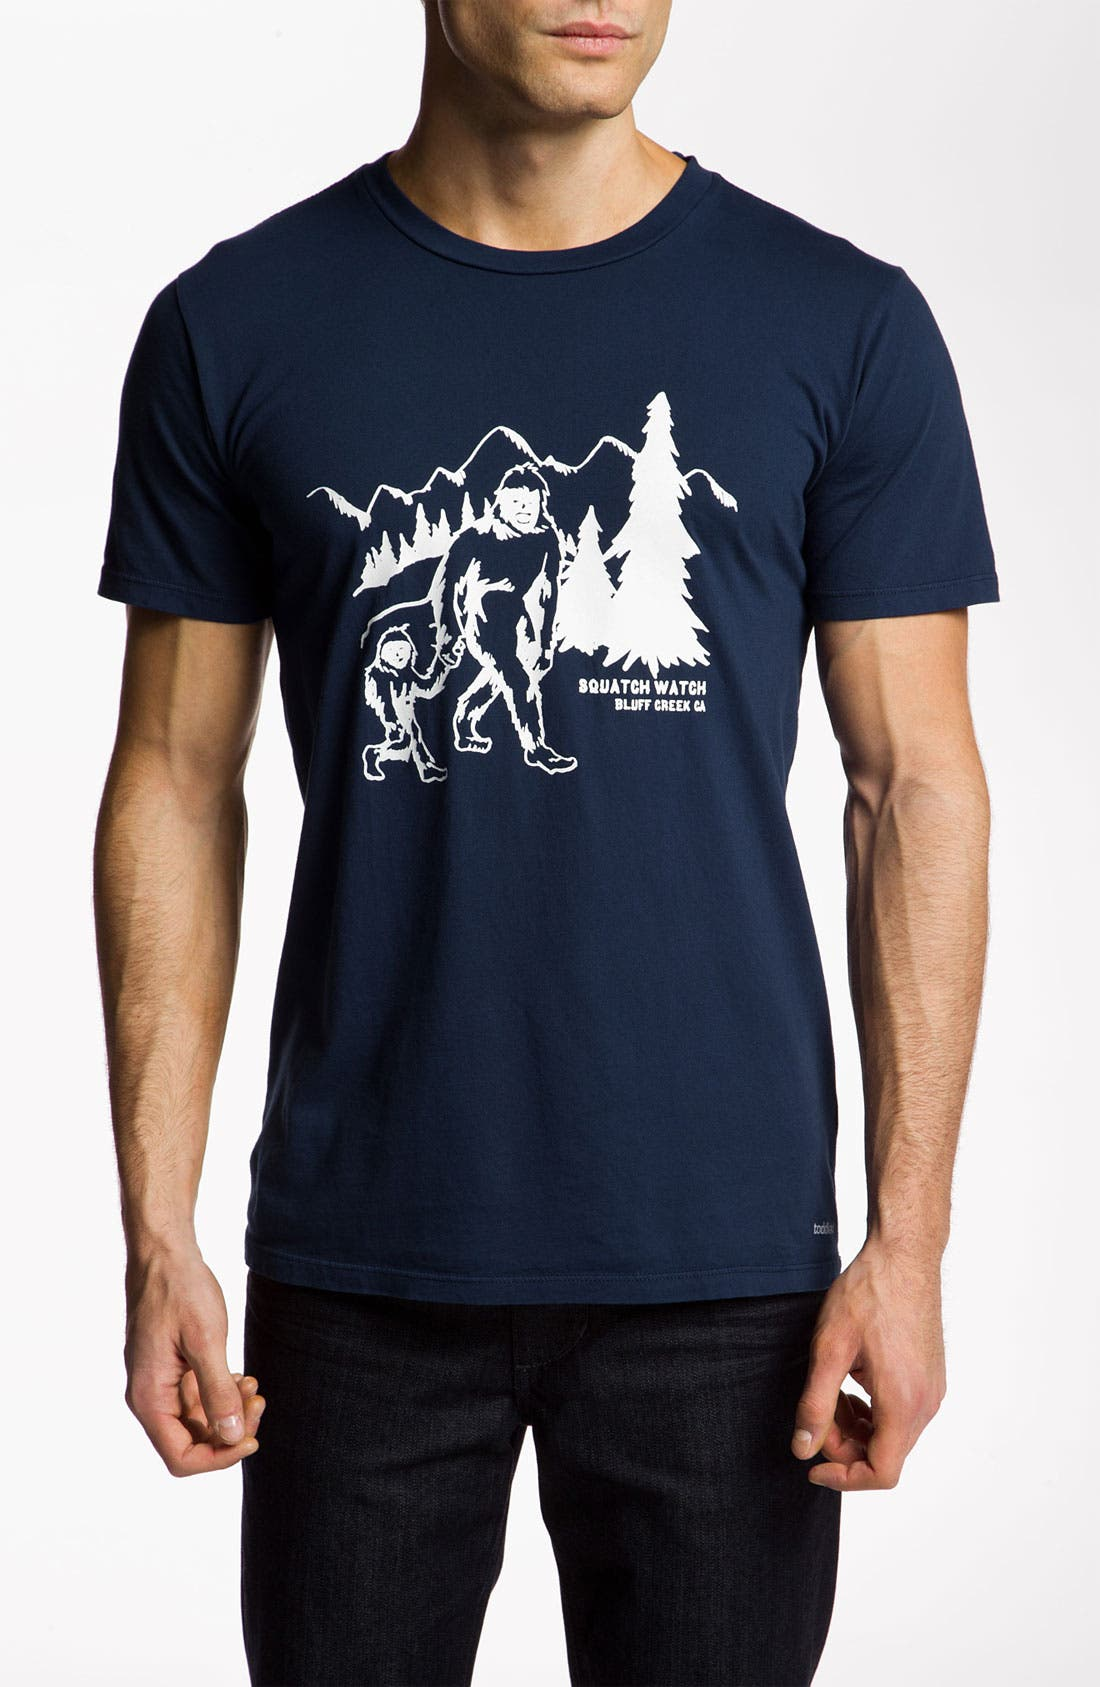 Alternate Image 1 Selected - Toddland 'Squatch Watch' T-Shirt